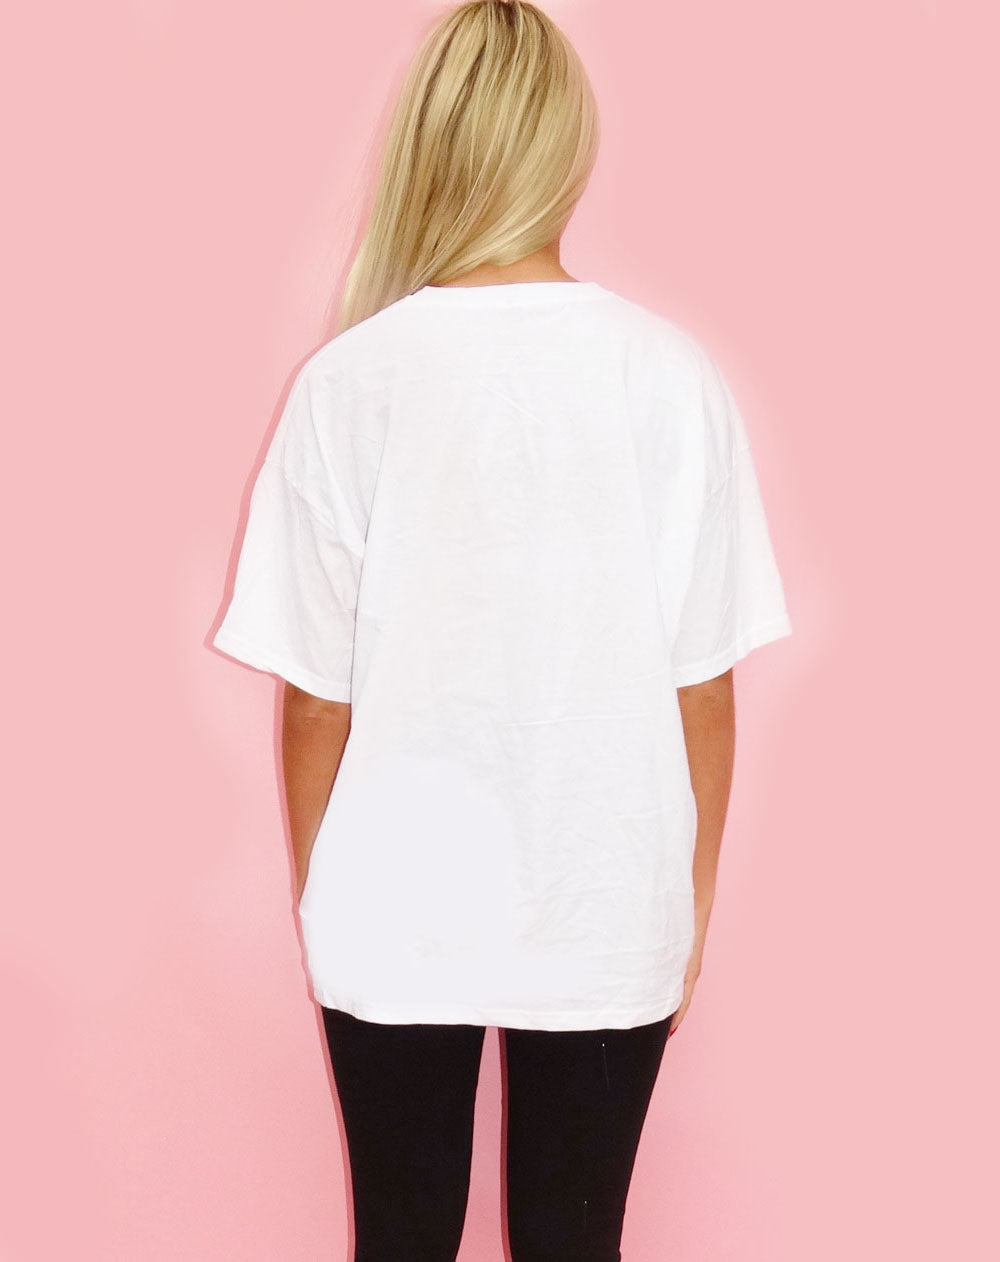 Independent Pink Lip Graphic T-shirt in White